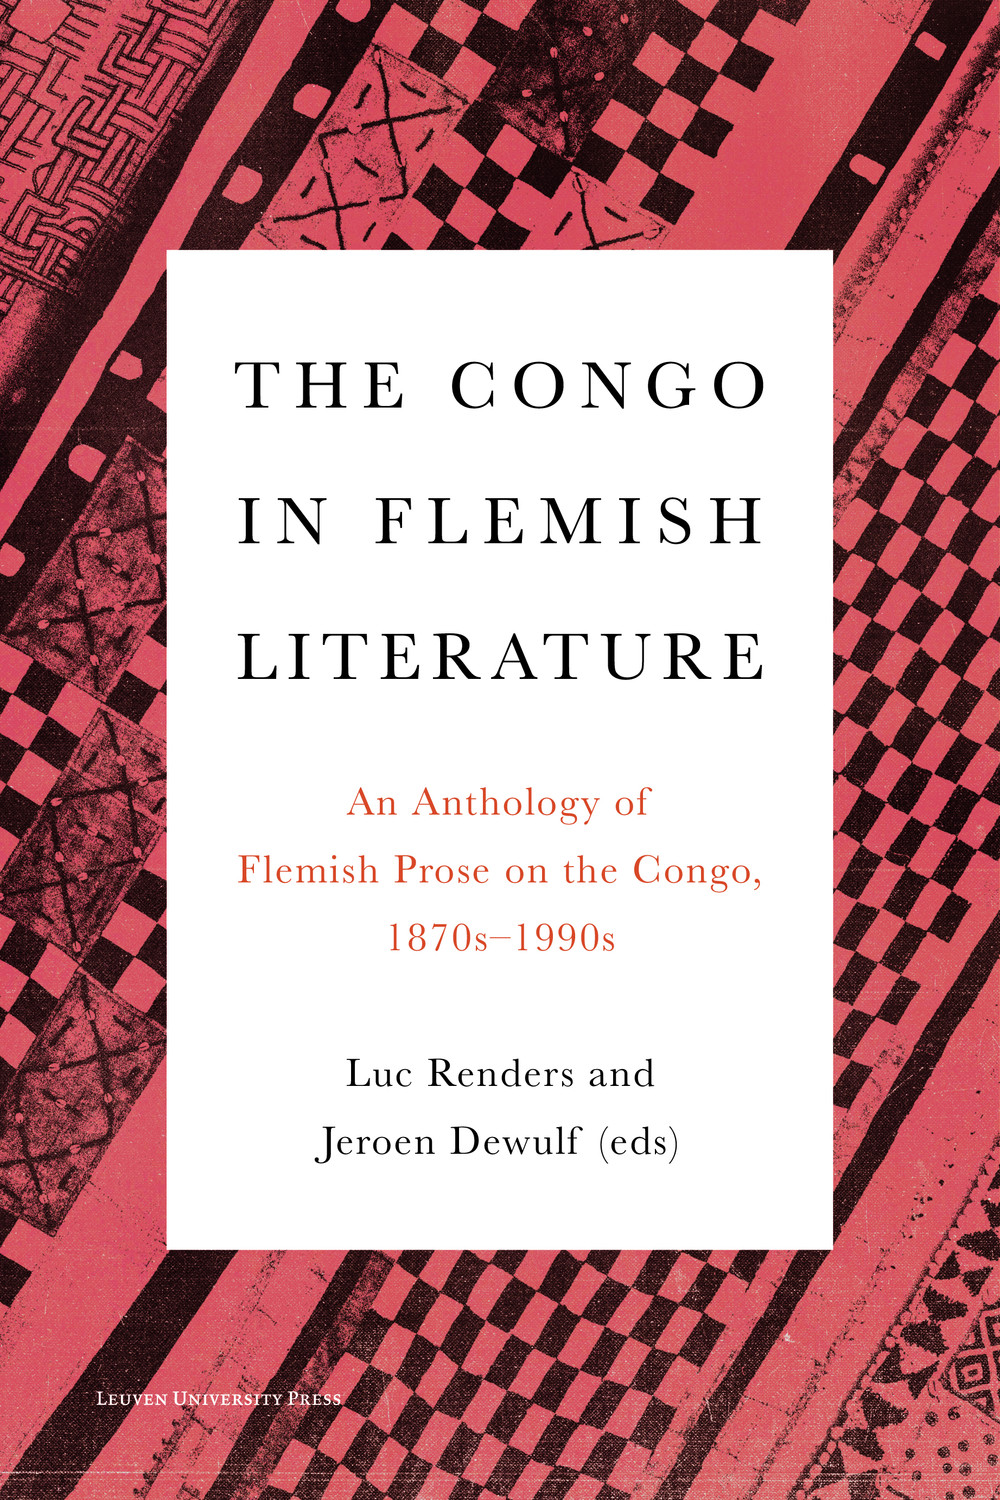 The Congo in Flemish Literature